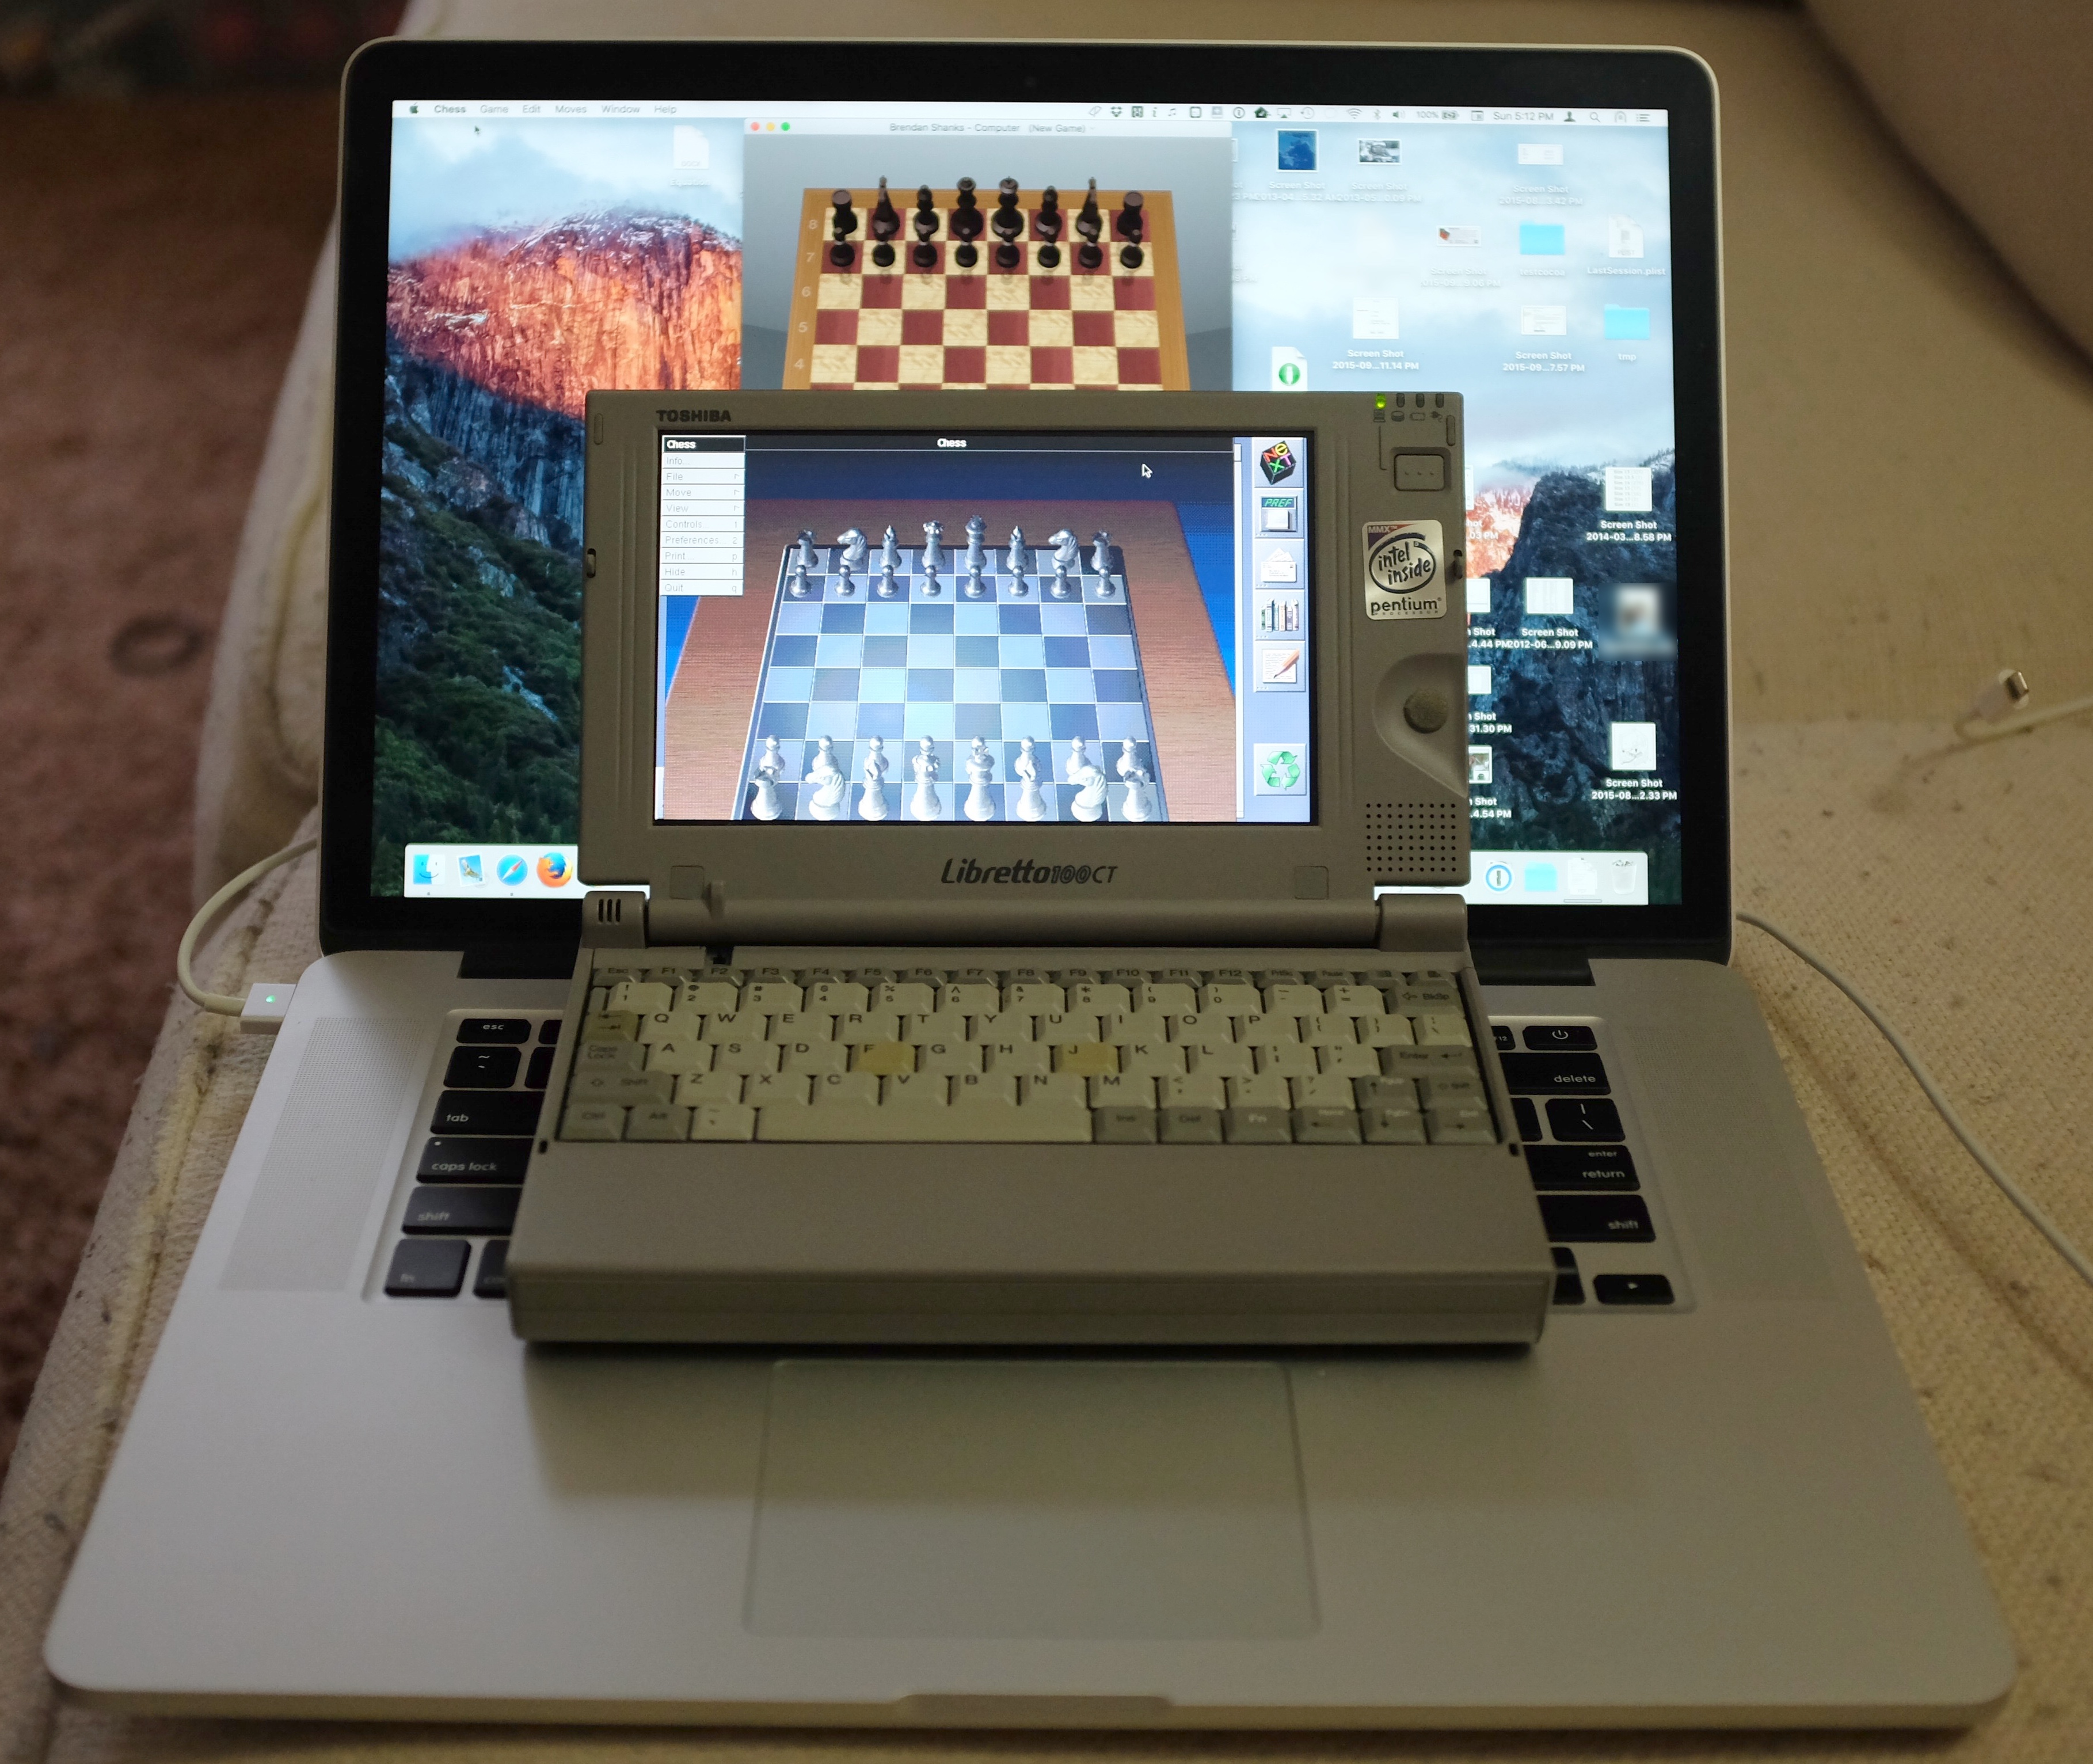 Chess.app on OS X and OPENSTEP